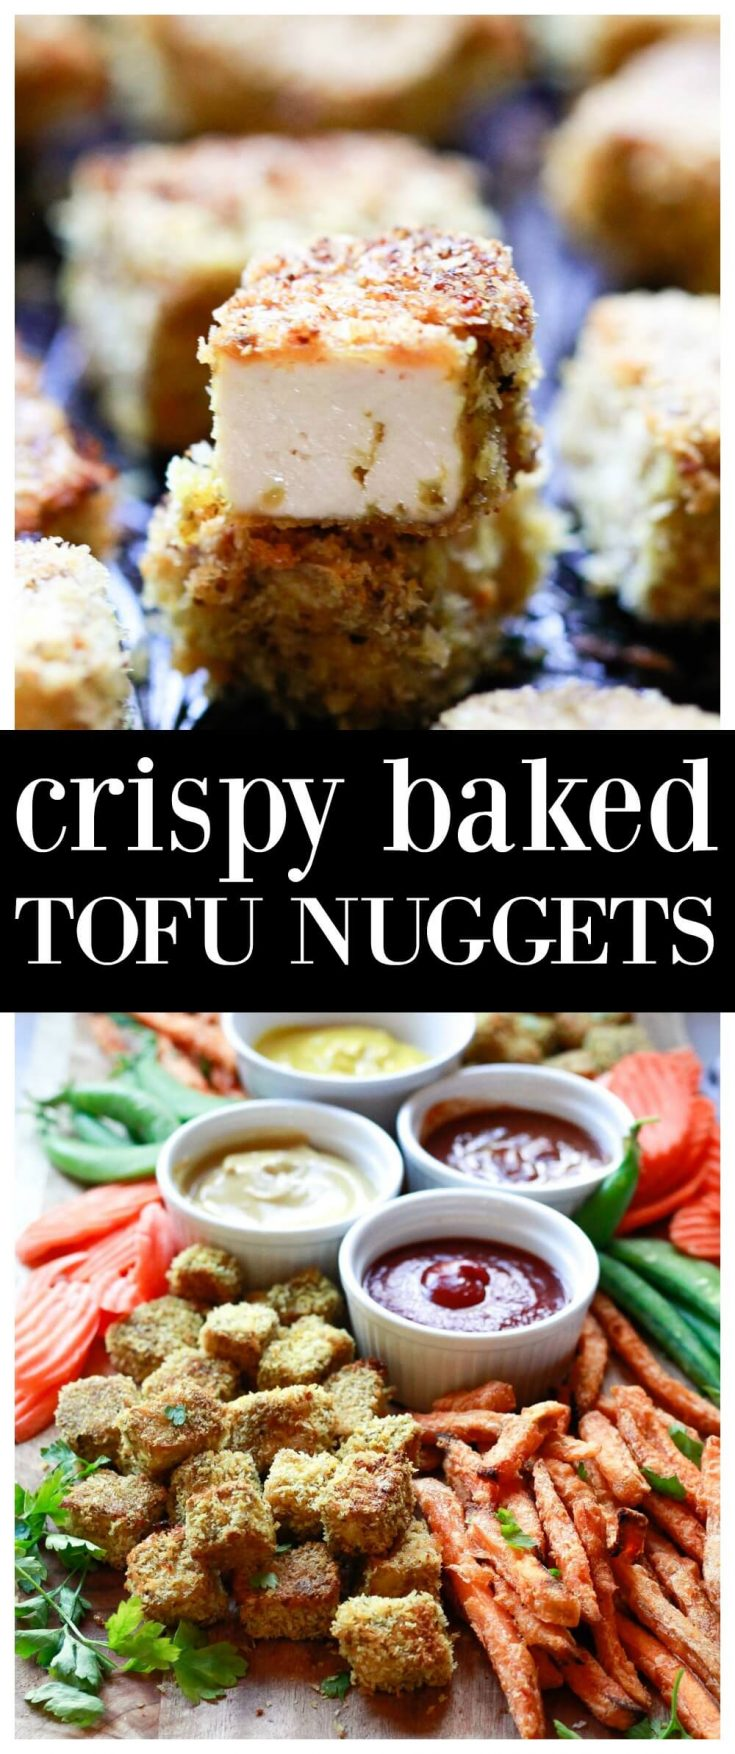 Panko breaded baked tofu nuggets are a favorite tofu recipe for kids (or anyone). These addictive bites are like chicken nuggets, but better! They are vegan, easy to make gluten-free, and high-protein.